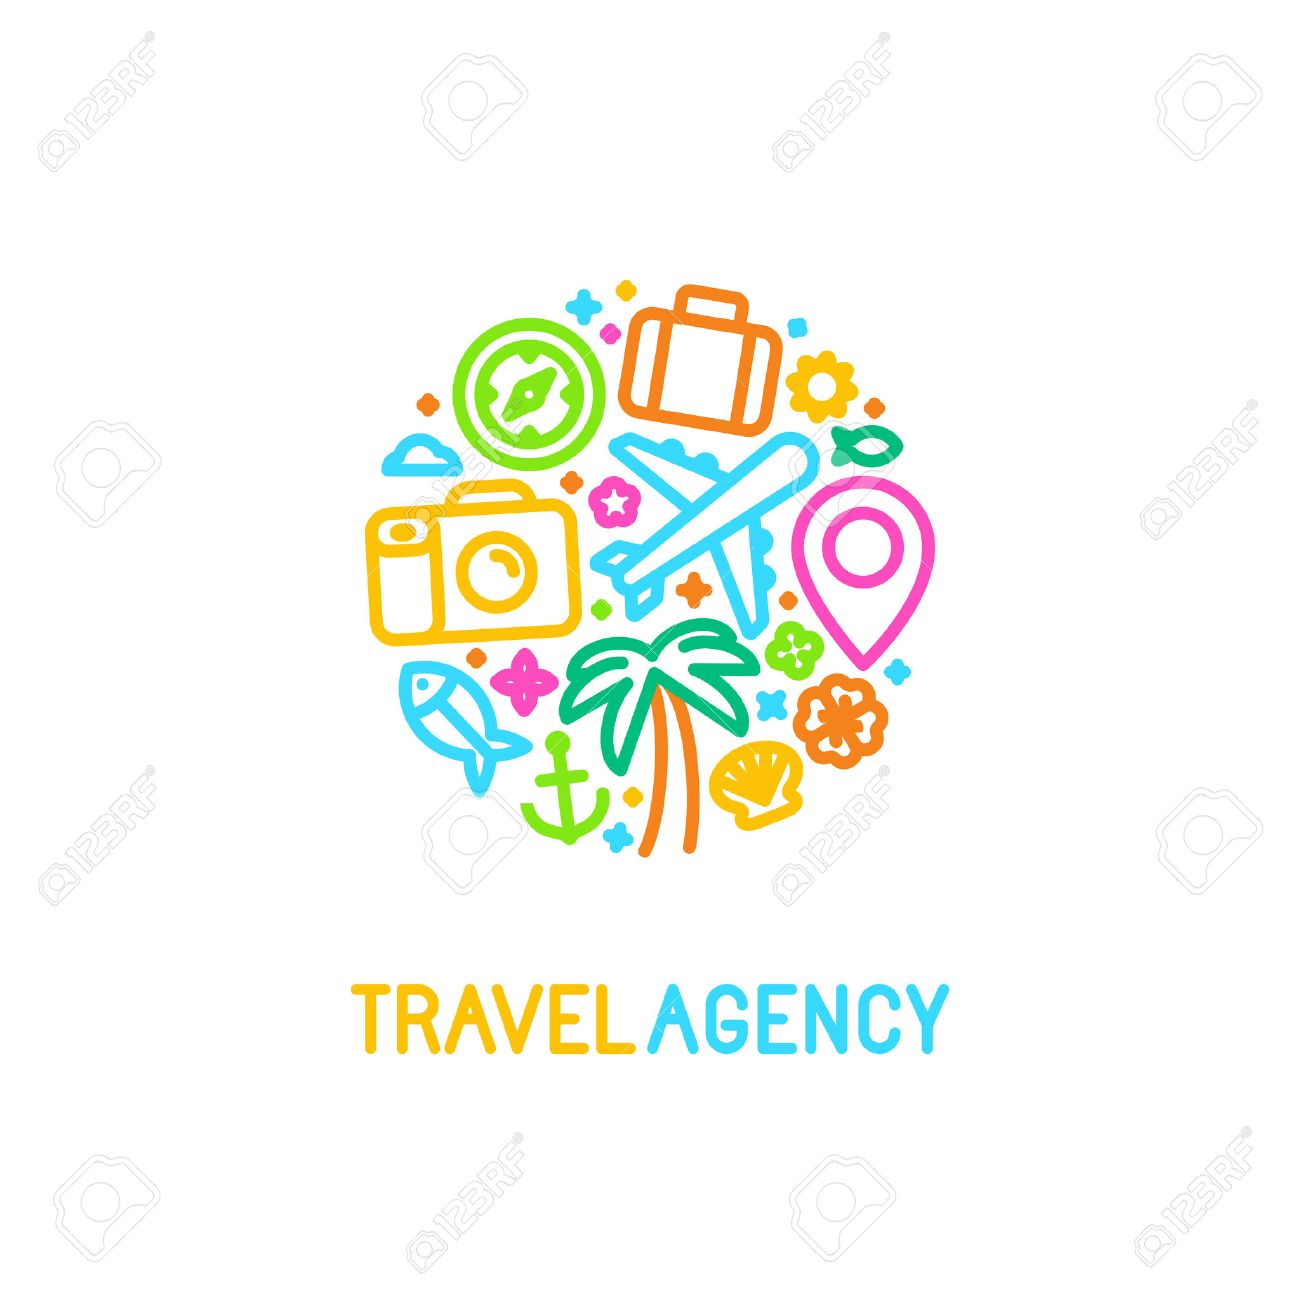 Vector logo design template in trendy linear style with icons - travel agency emblem and tour guide concepts - 52360262